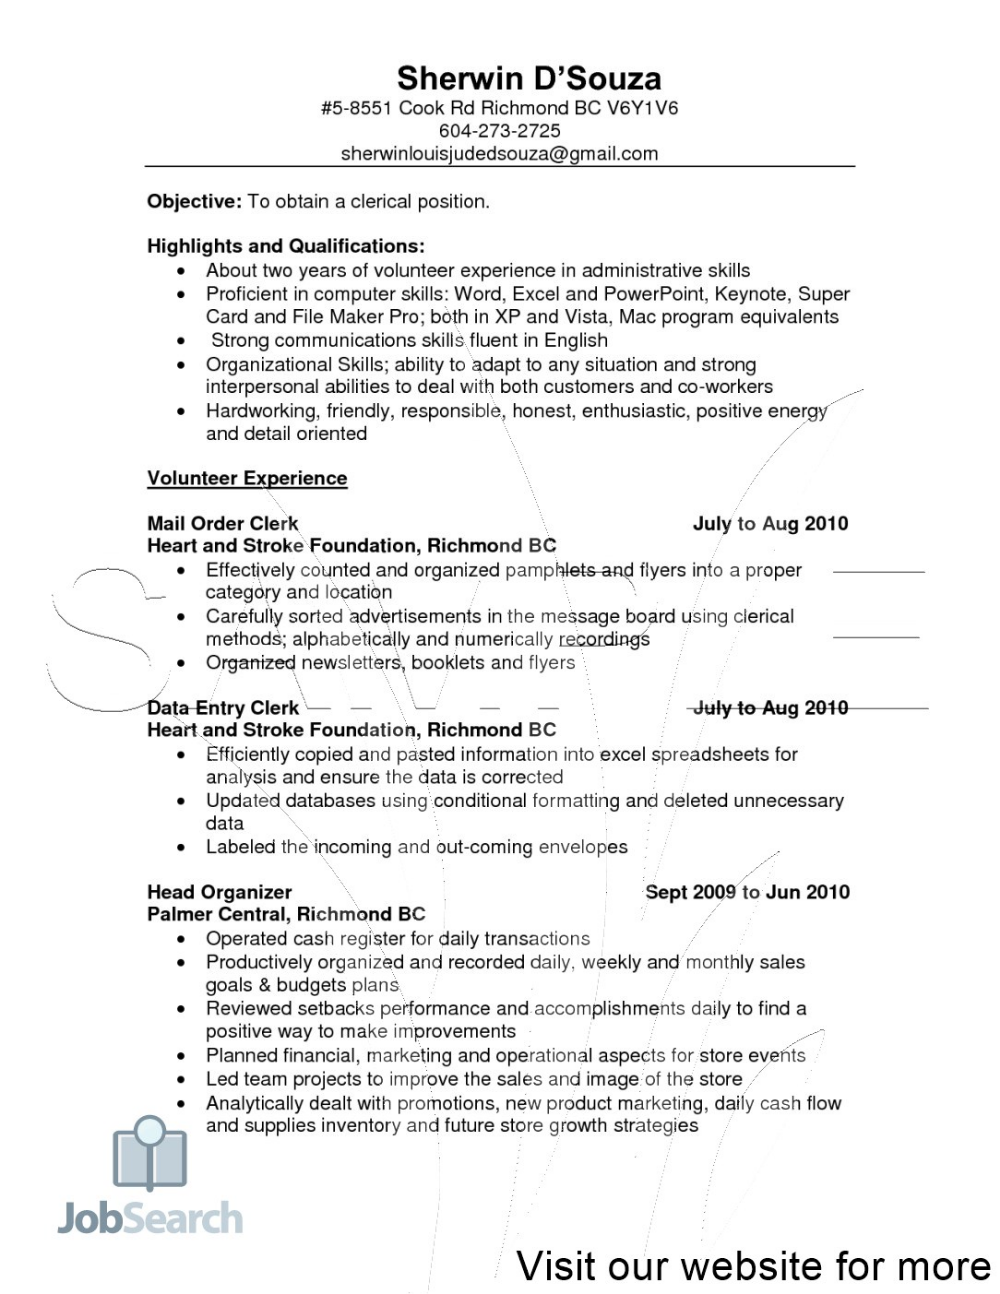 Objective for Resume Clerical Work 2020 good objective